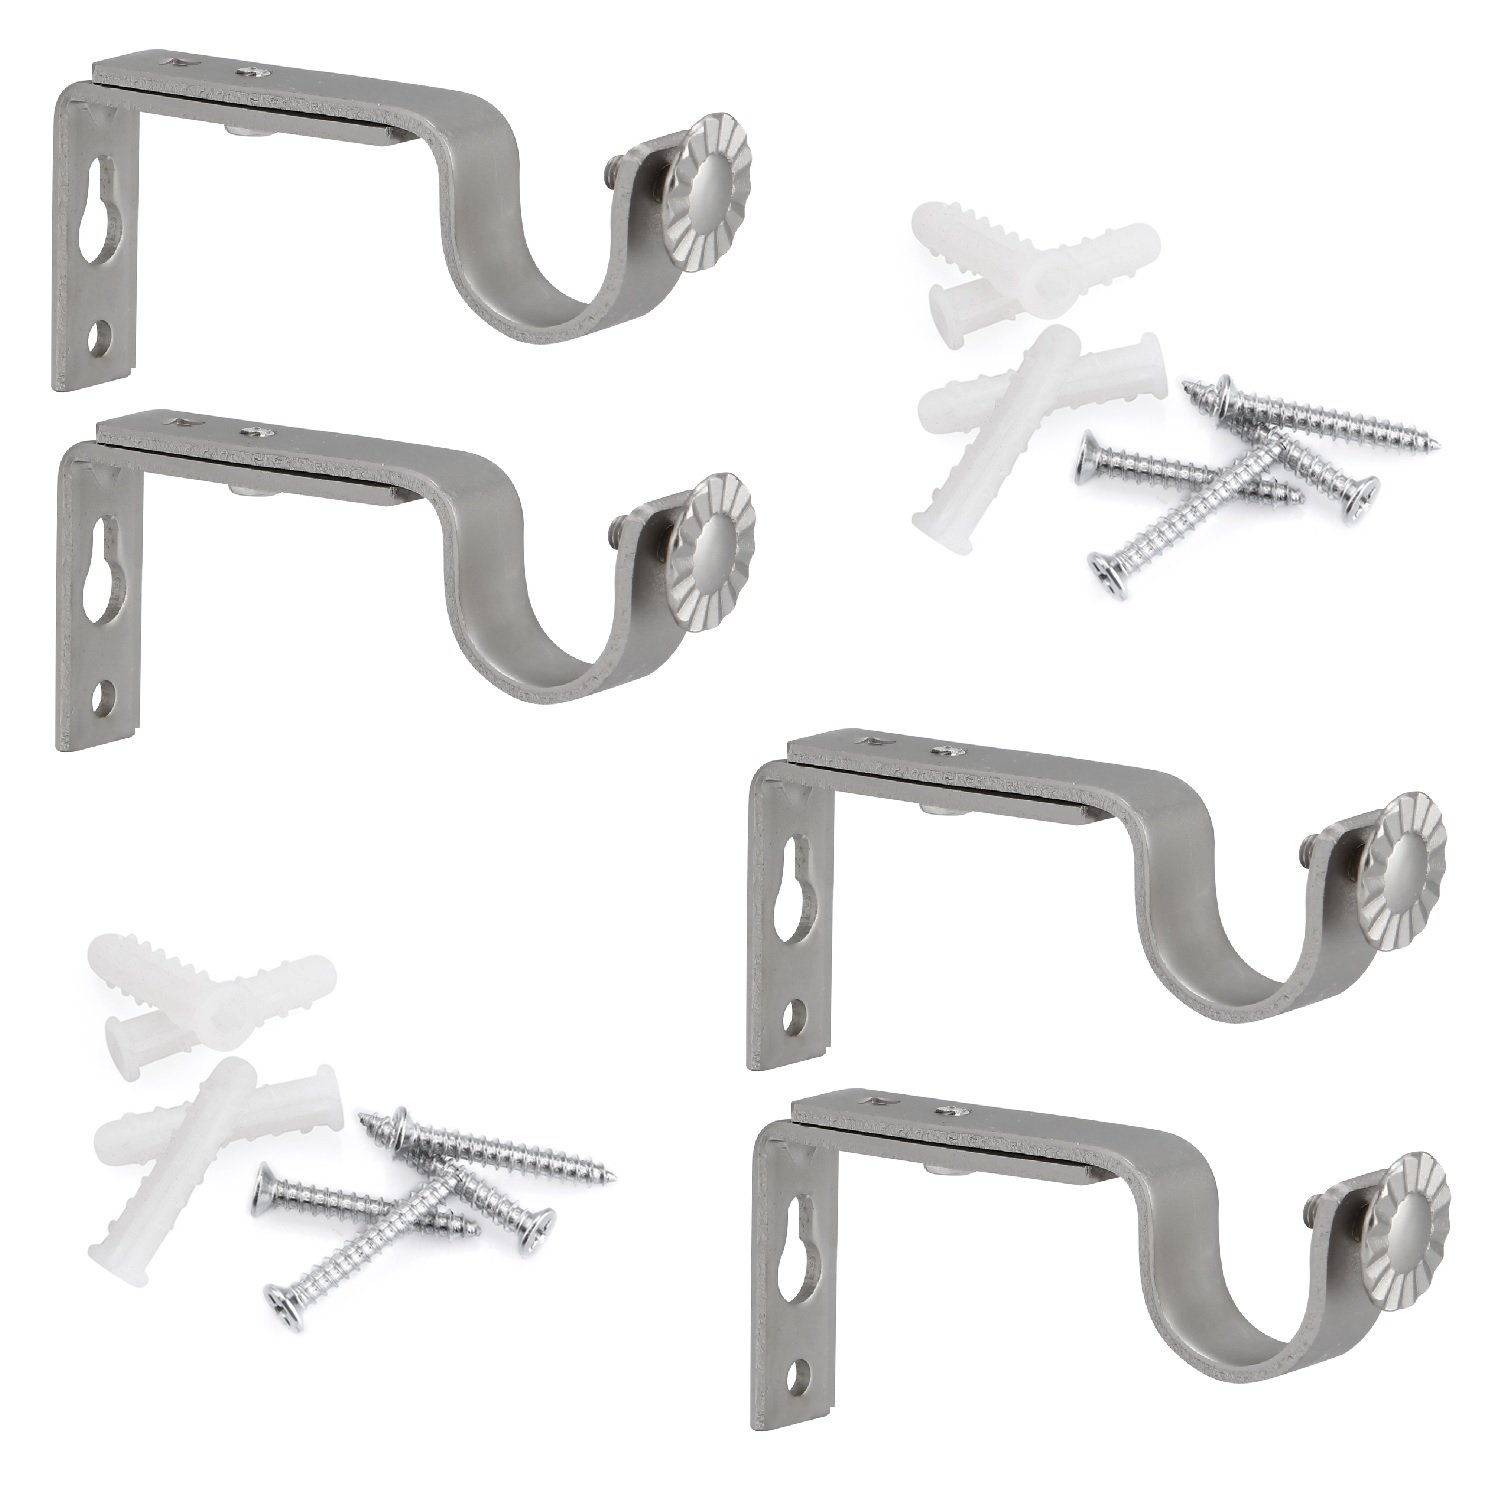 Anndason Heavy Duty Curtain Rod Brackets for 3/4 or 5/8 Inch Rod (Silver) (Set of 4)